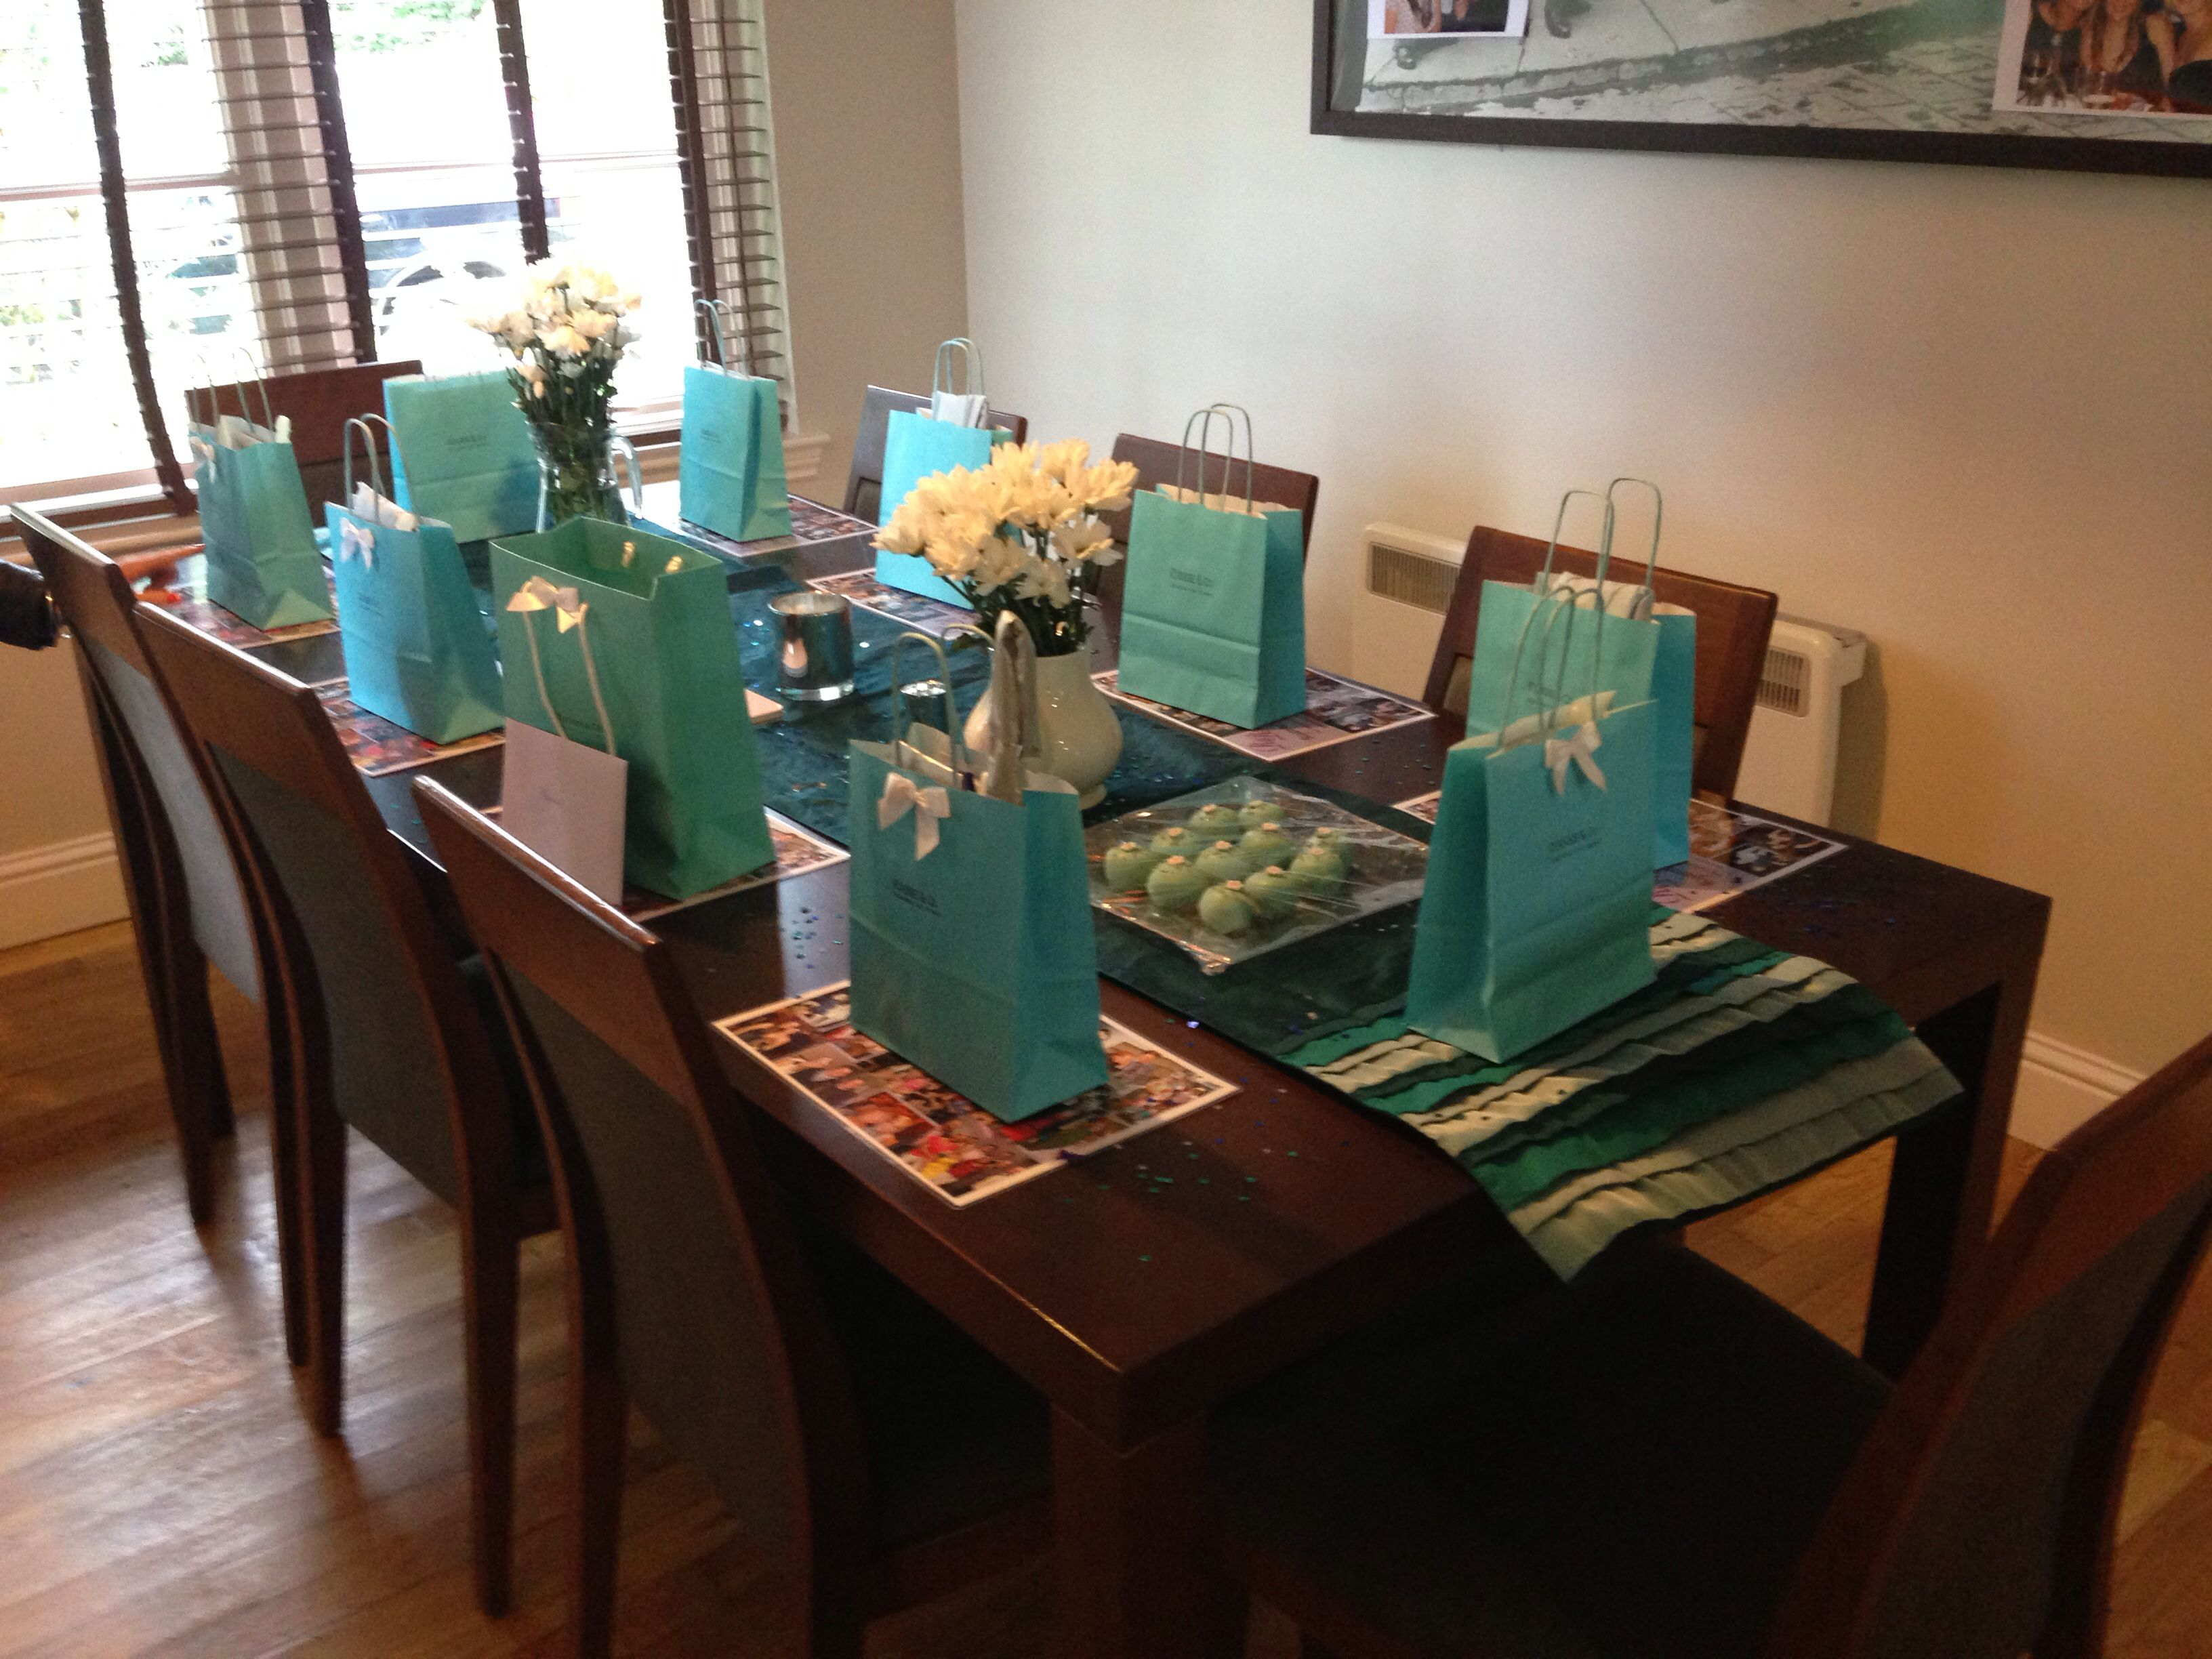 Tiffany themed dinner party with gift bags containing black sunglasses, string of costume pearls, costume tiara & long black gloves. All you need to become miss GoLightly,